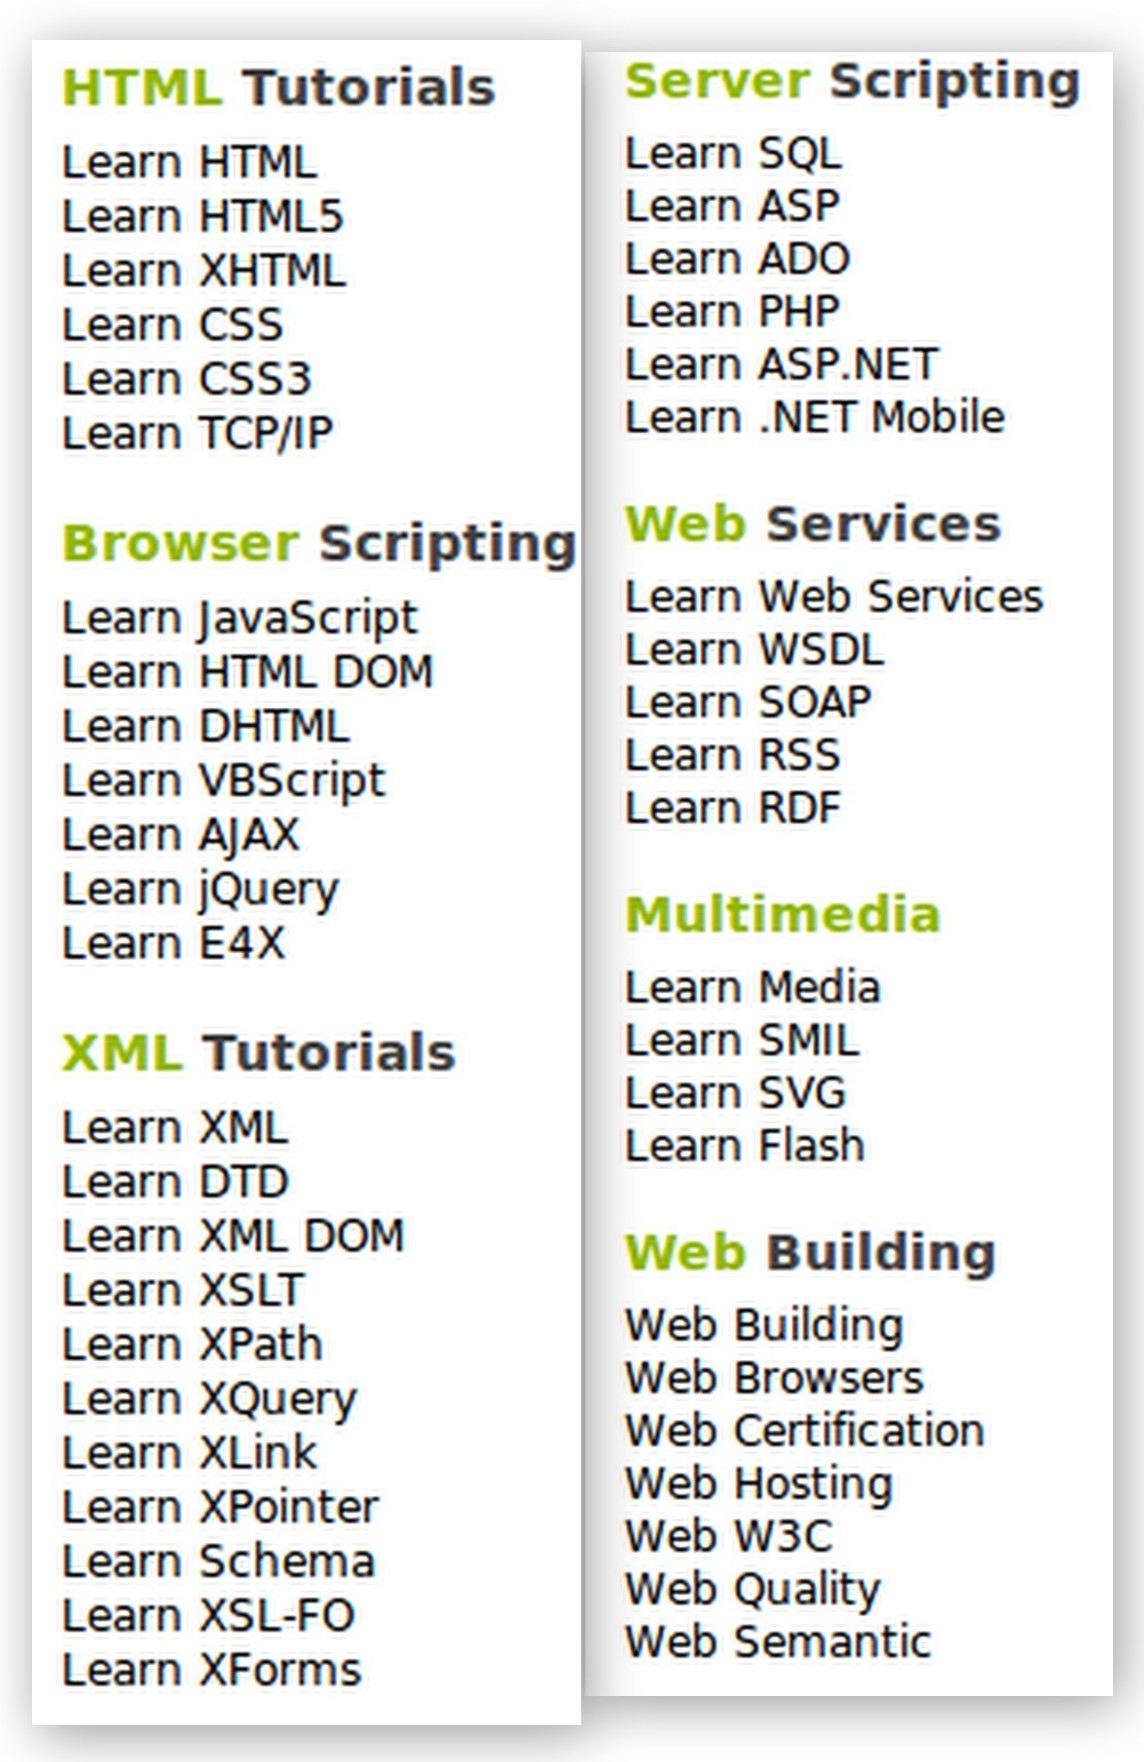 w3schools the best website to learn all about web